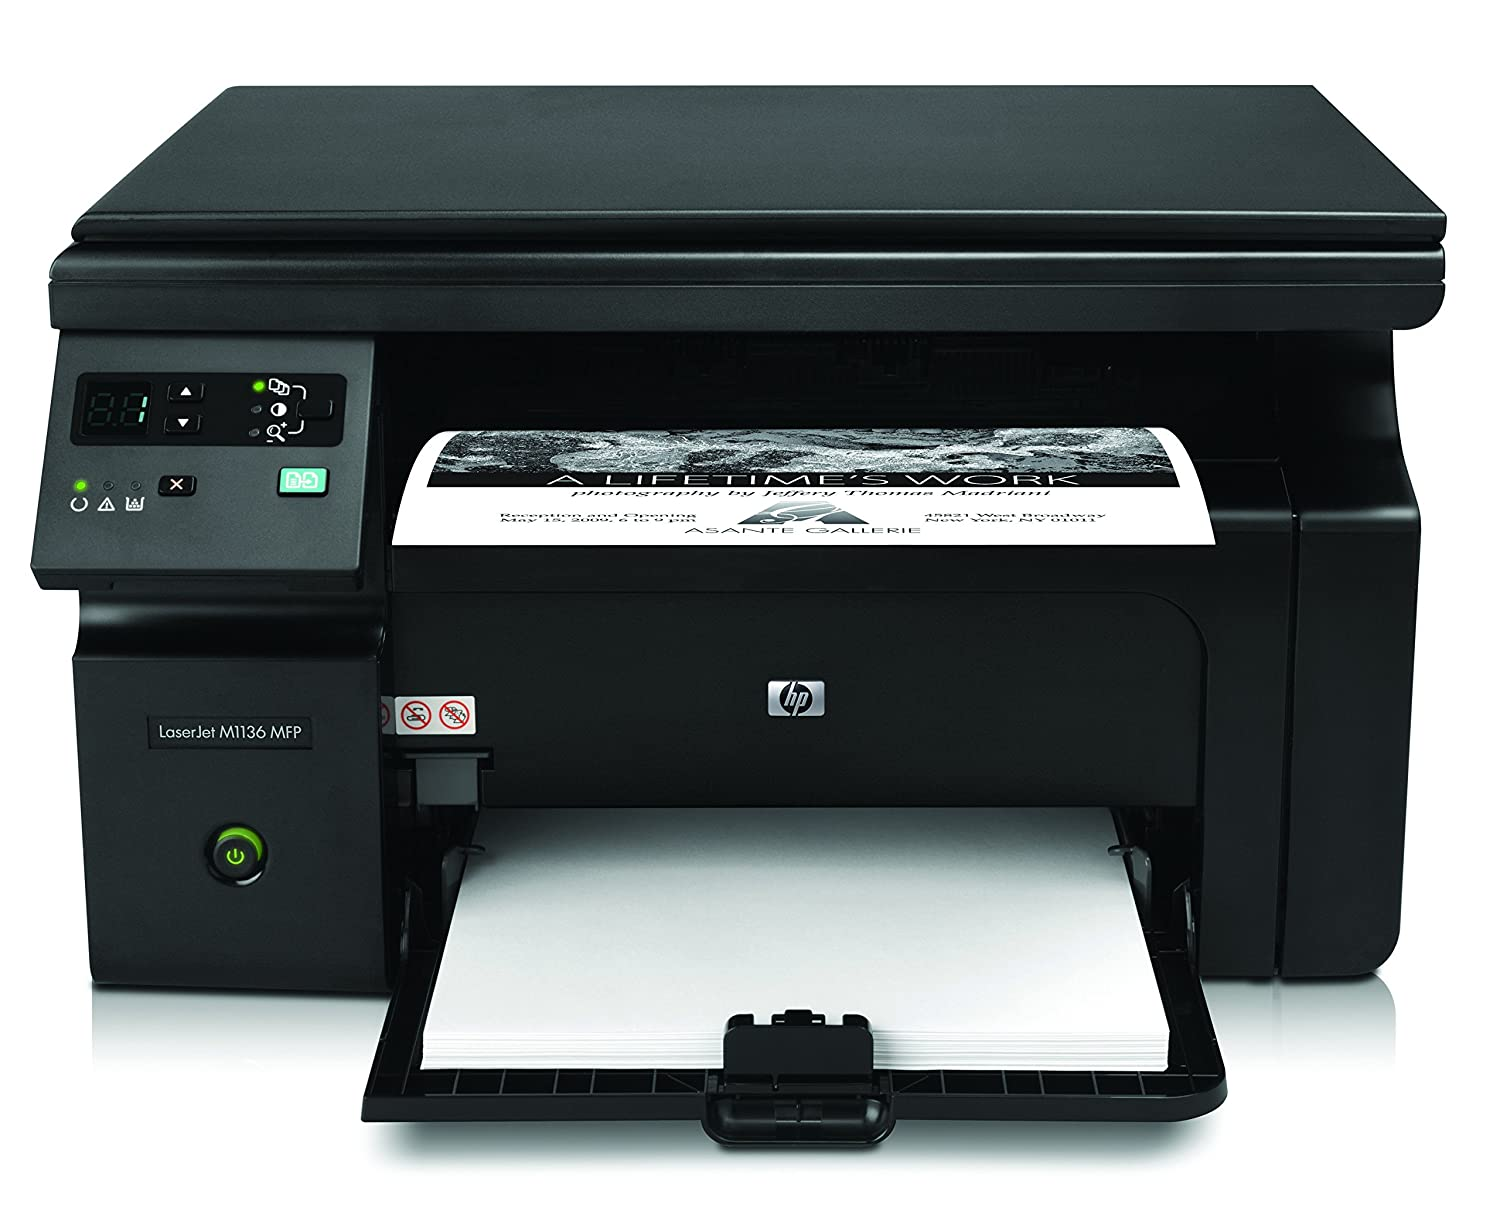 Image result for printer